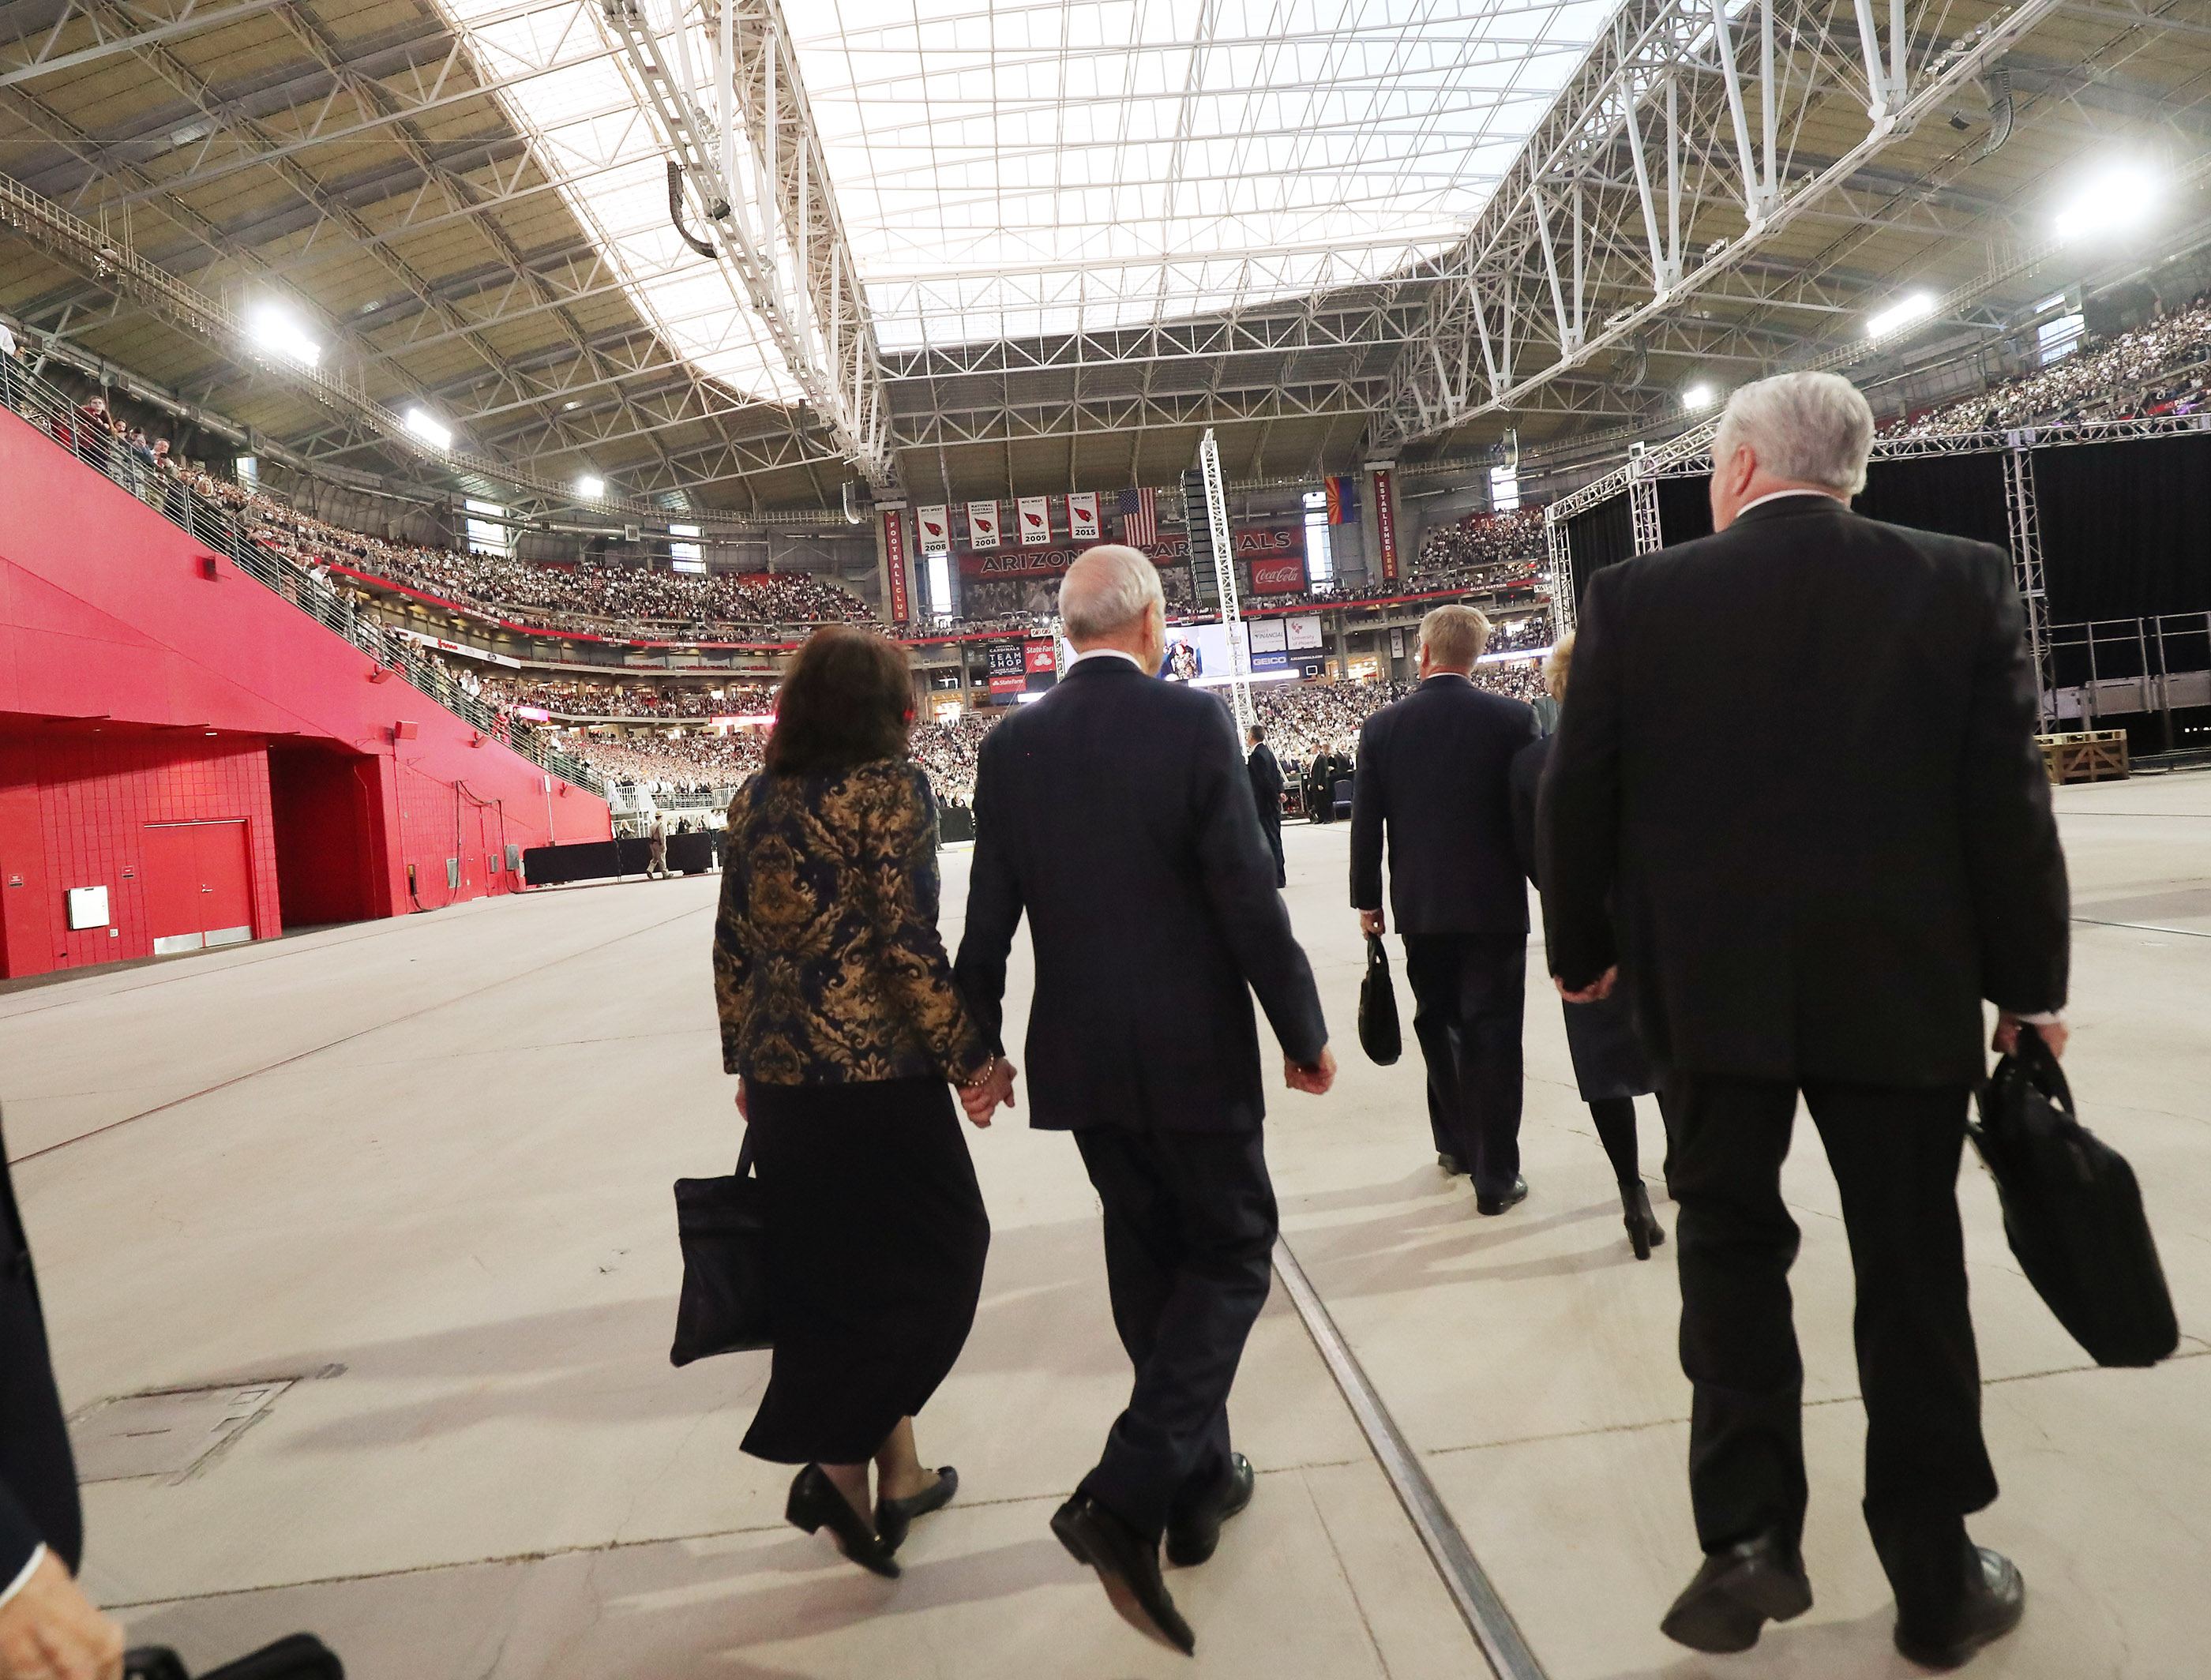 President Russell M. Nelson of The Church of Jesus Christ of Latter-day Saints walks into the State Farm Stadium with his wife, Sister Wendy Nelson, in Phoenix on Sunday, Feb. 10, 2019.